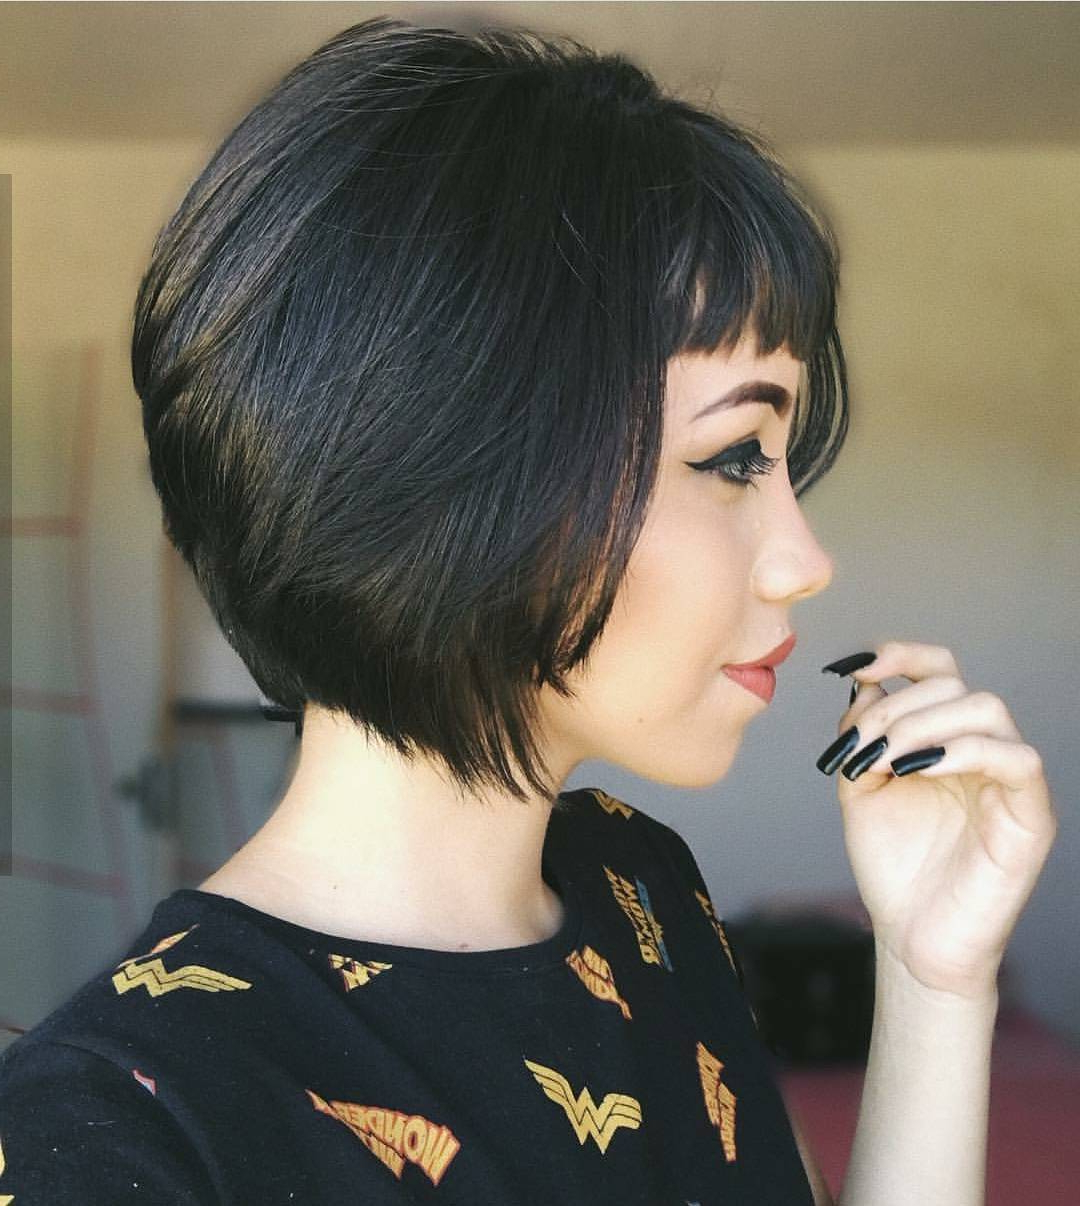 10 Chic Short Bob Haircuts That Balance Your Face Shape! Intended For Classy Bob Haircuts With Bangs (View 11 of 20)